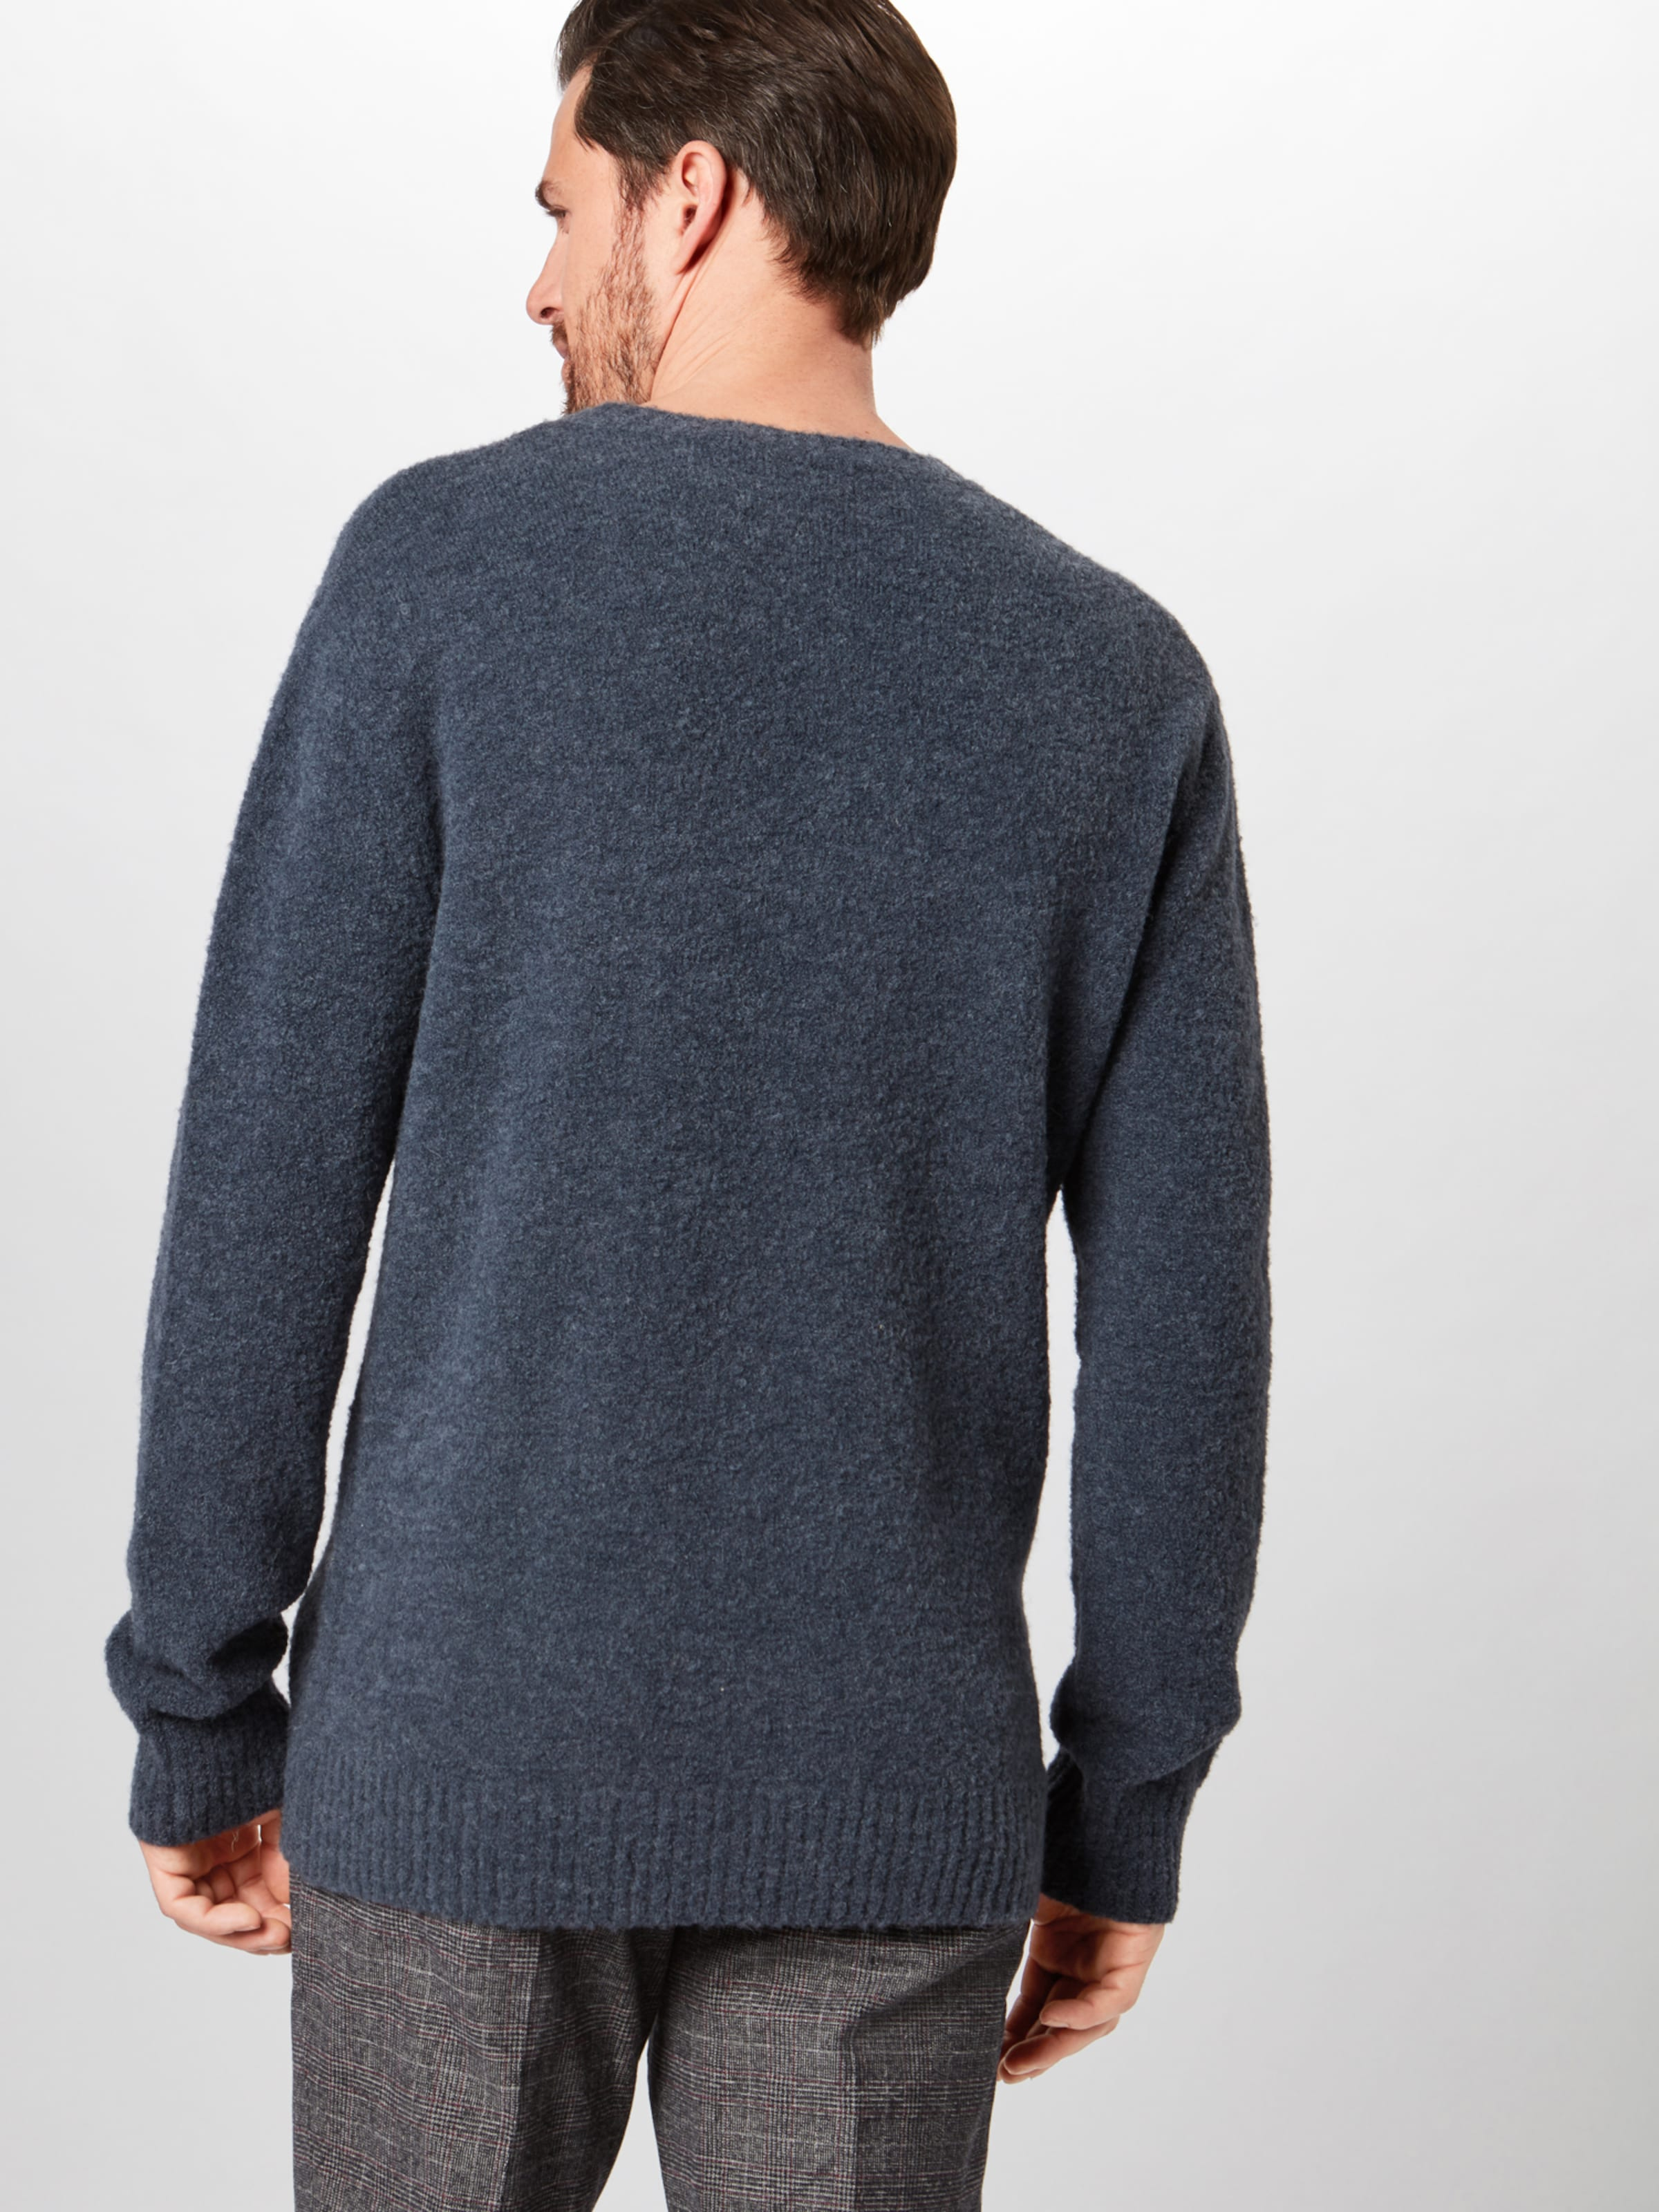 Pullover In 'hendry' Drykorn Pullover 'hendry' Drykorn Pullover In Navy Navy Drykorn rQtshd